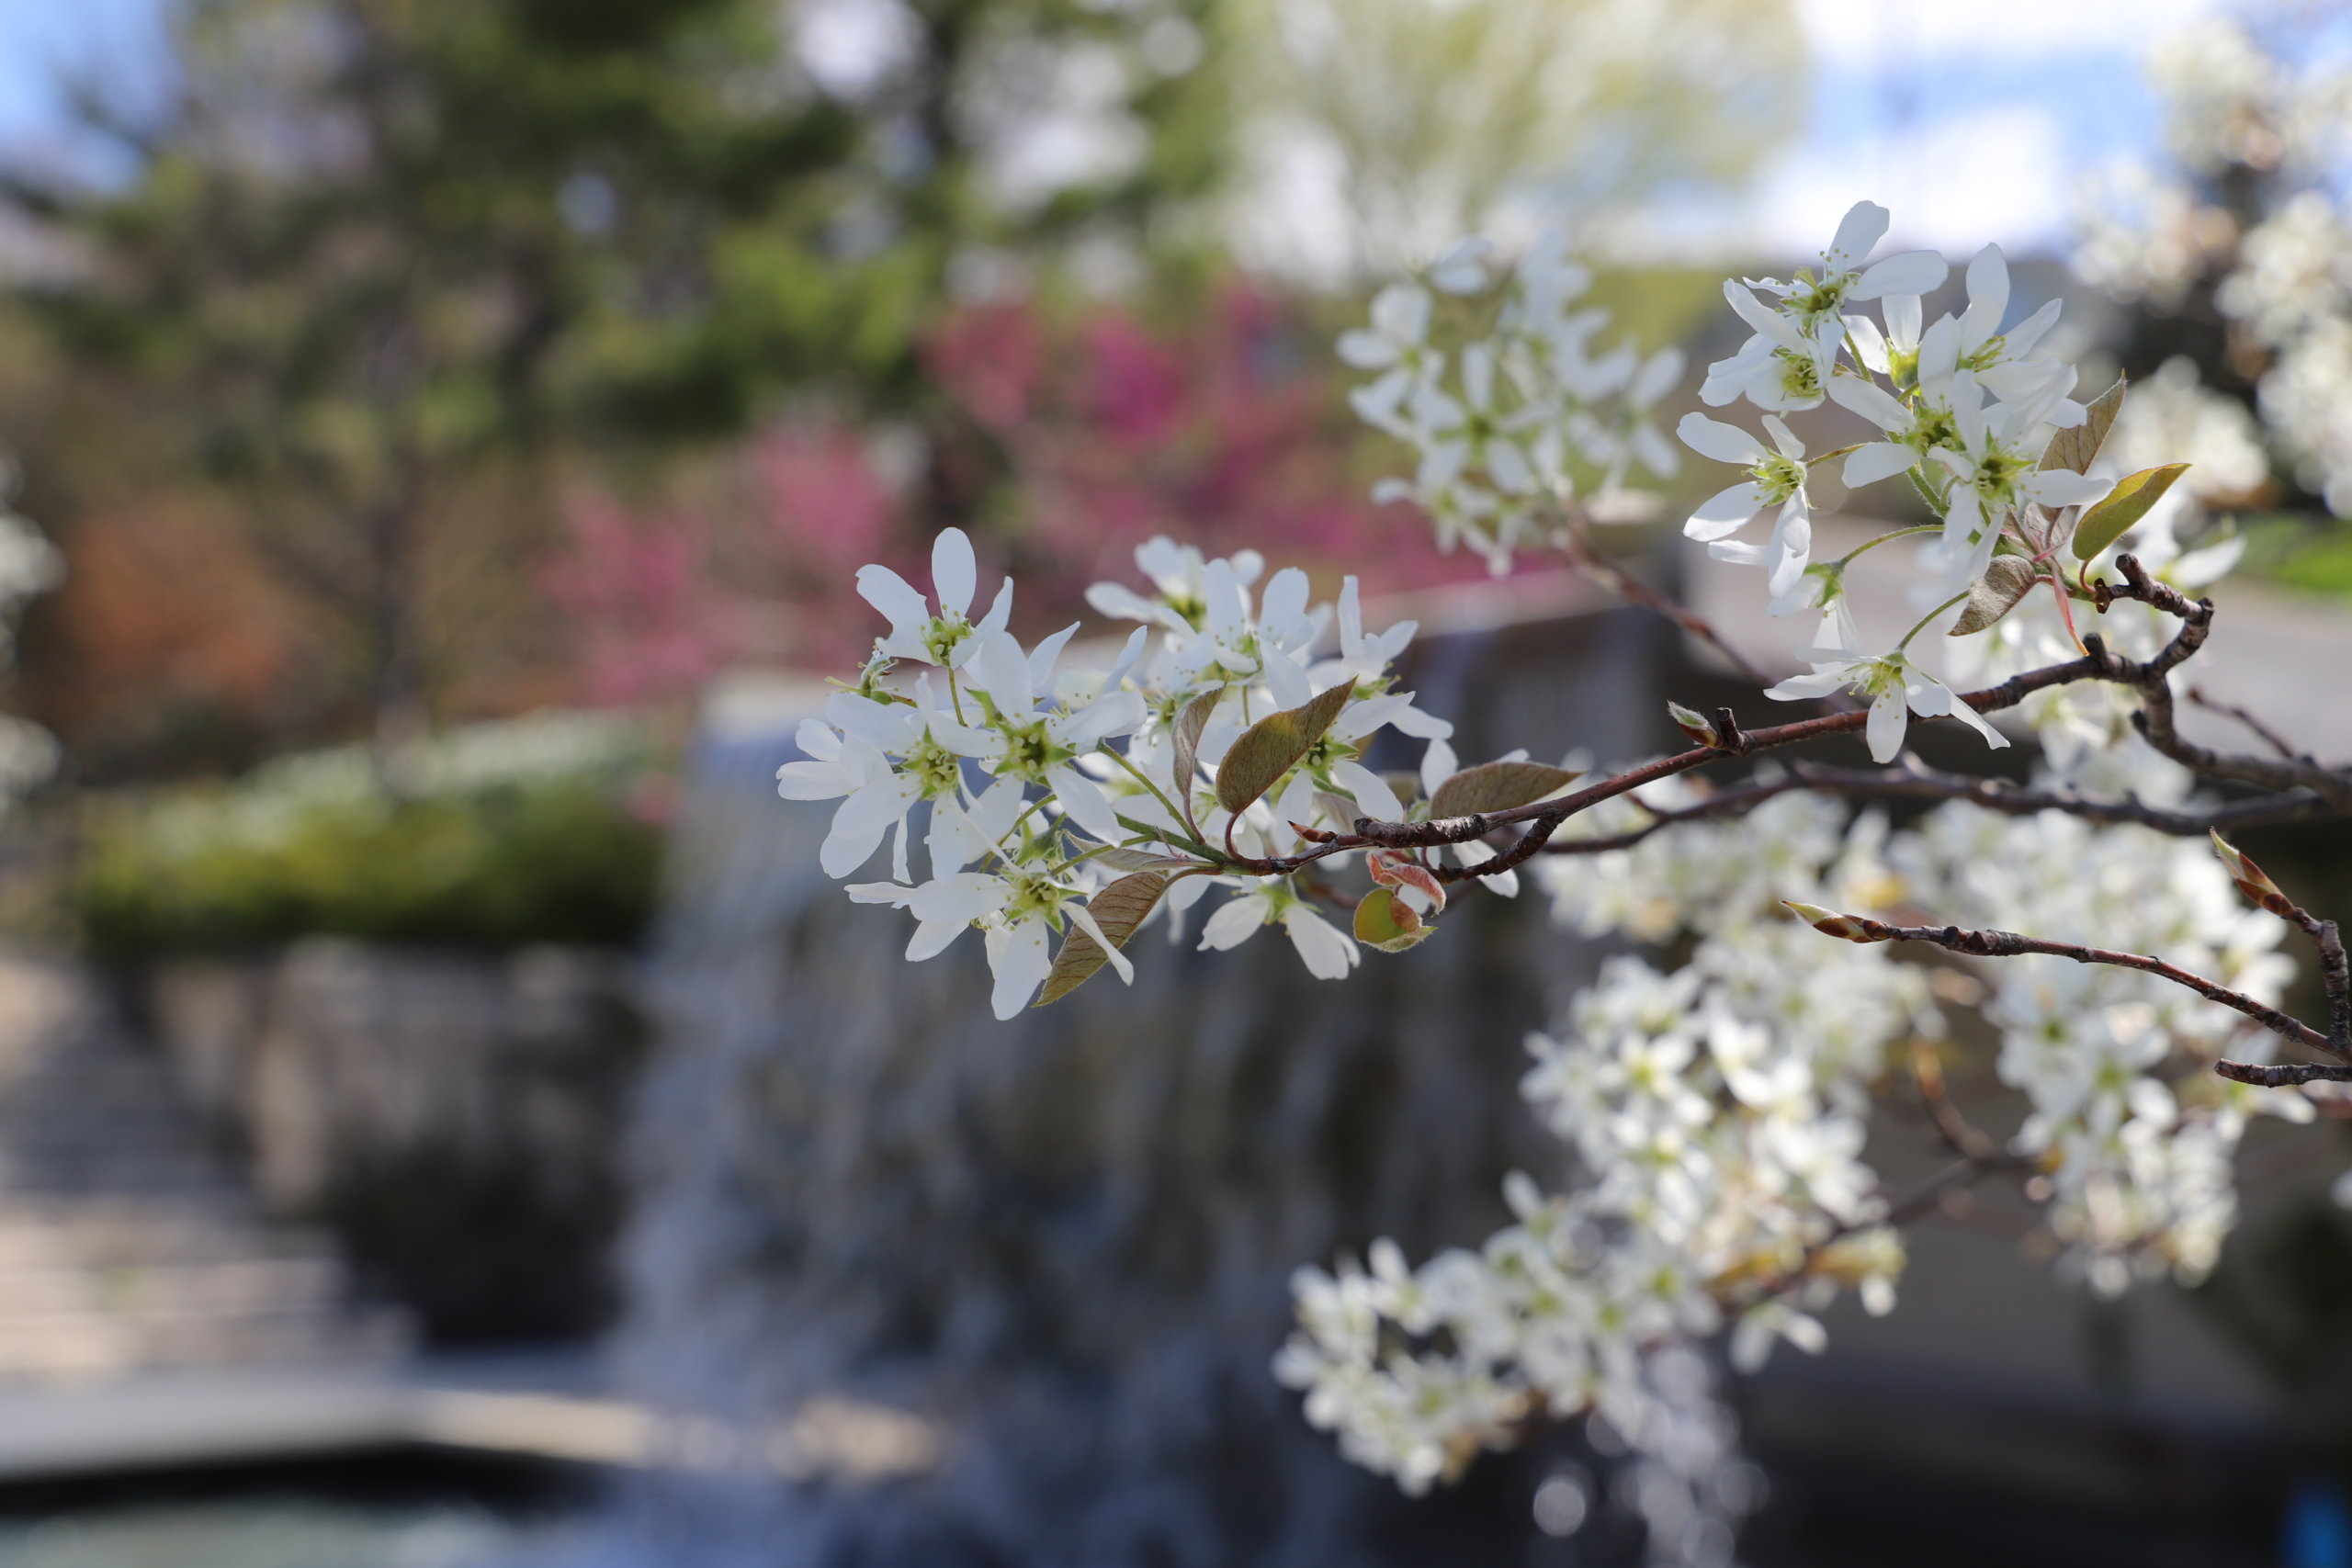 Waterfall in the background behind white flowering tree.